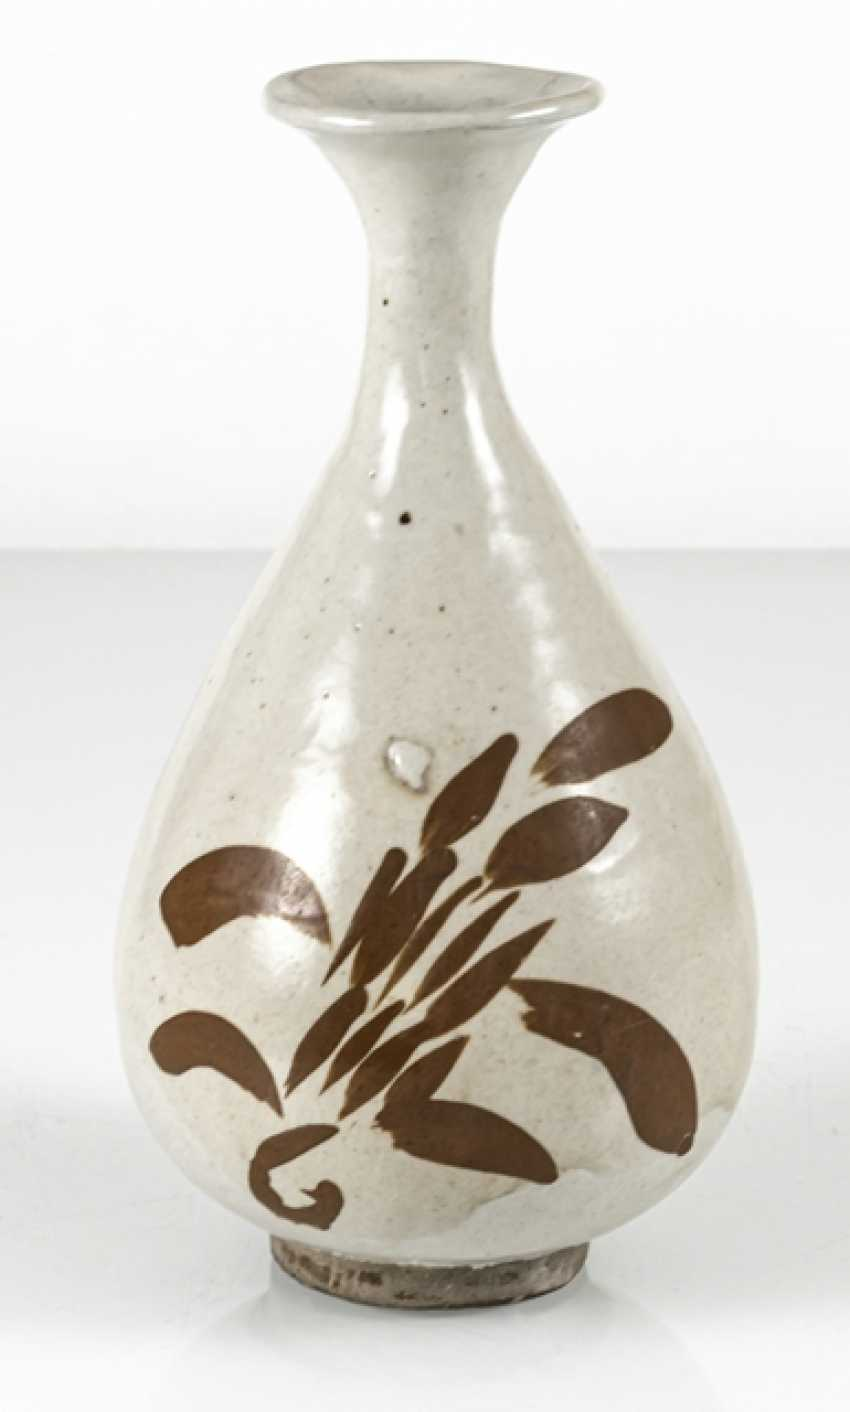 A fine Cizhou-Vase of stoneware with a persimmon-colored decor of floral motifs - photo 3